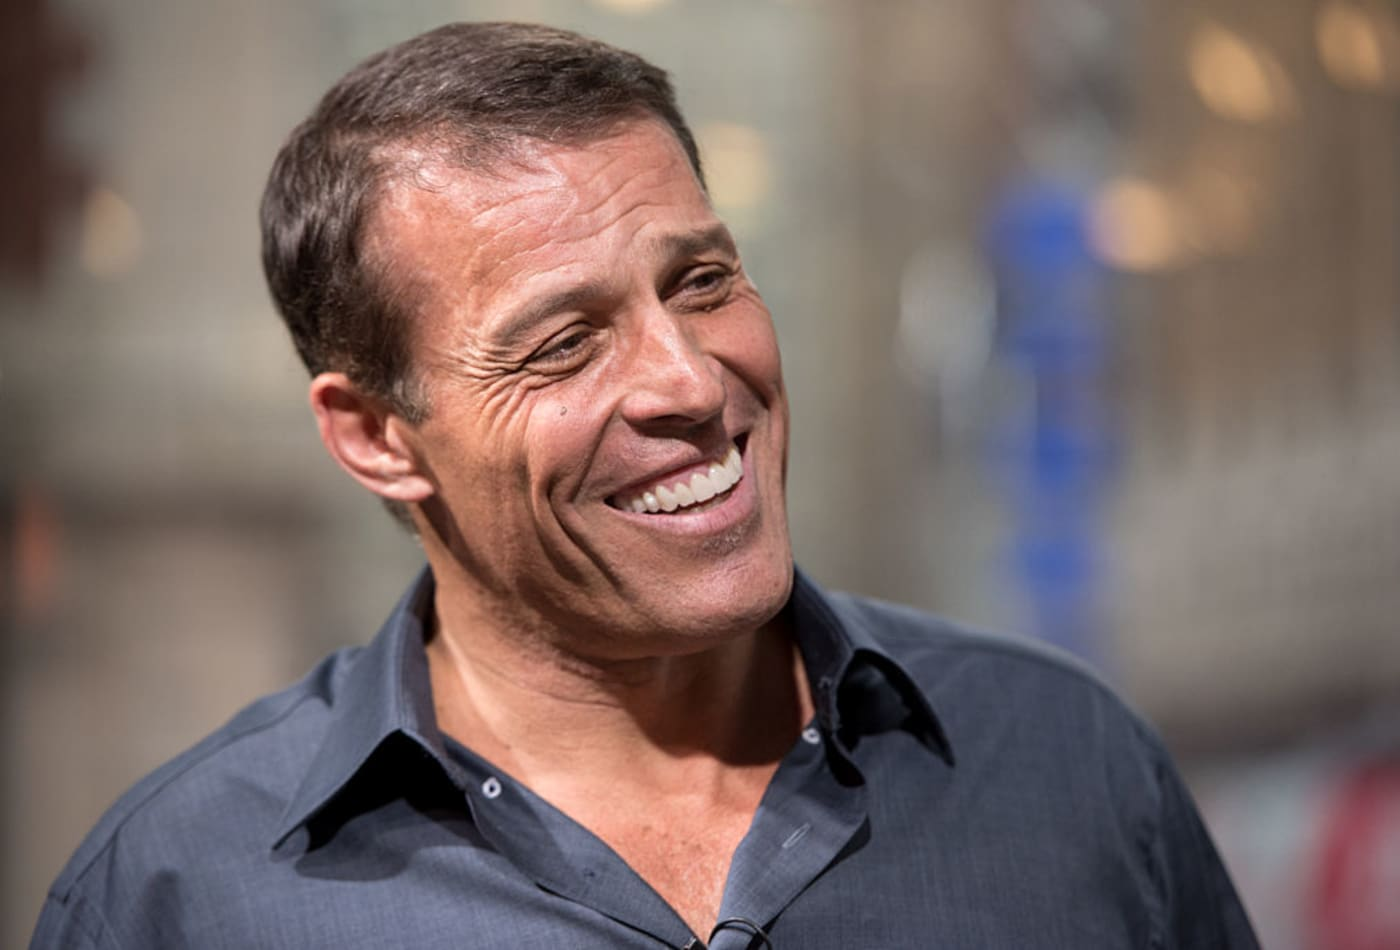 Tony Robbins: This exercise will help you eliminate stress